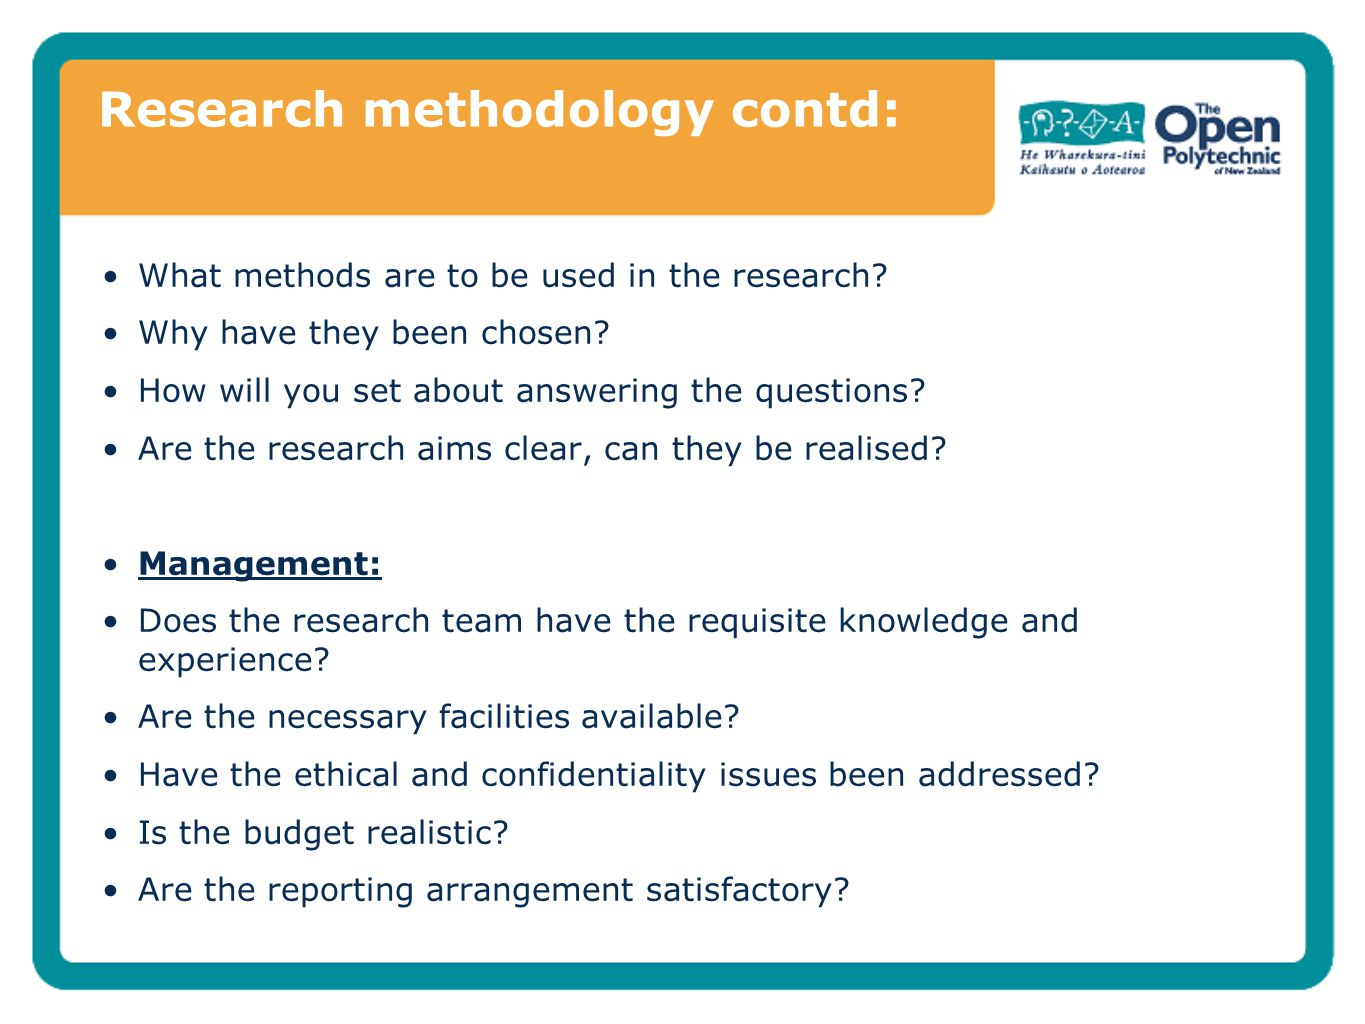 Research methodology contd: What methods are to be used in the research? Why have they been chosen? How will you set about answering the questions? Ar